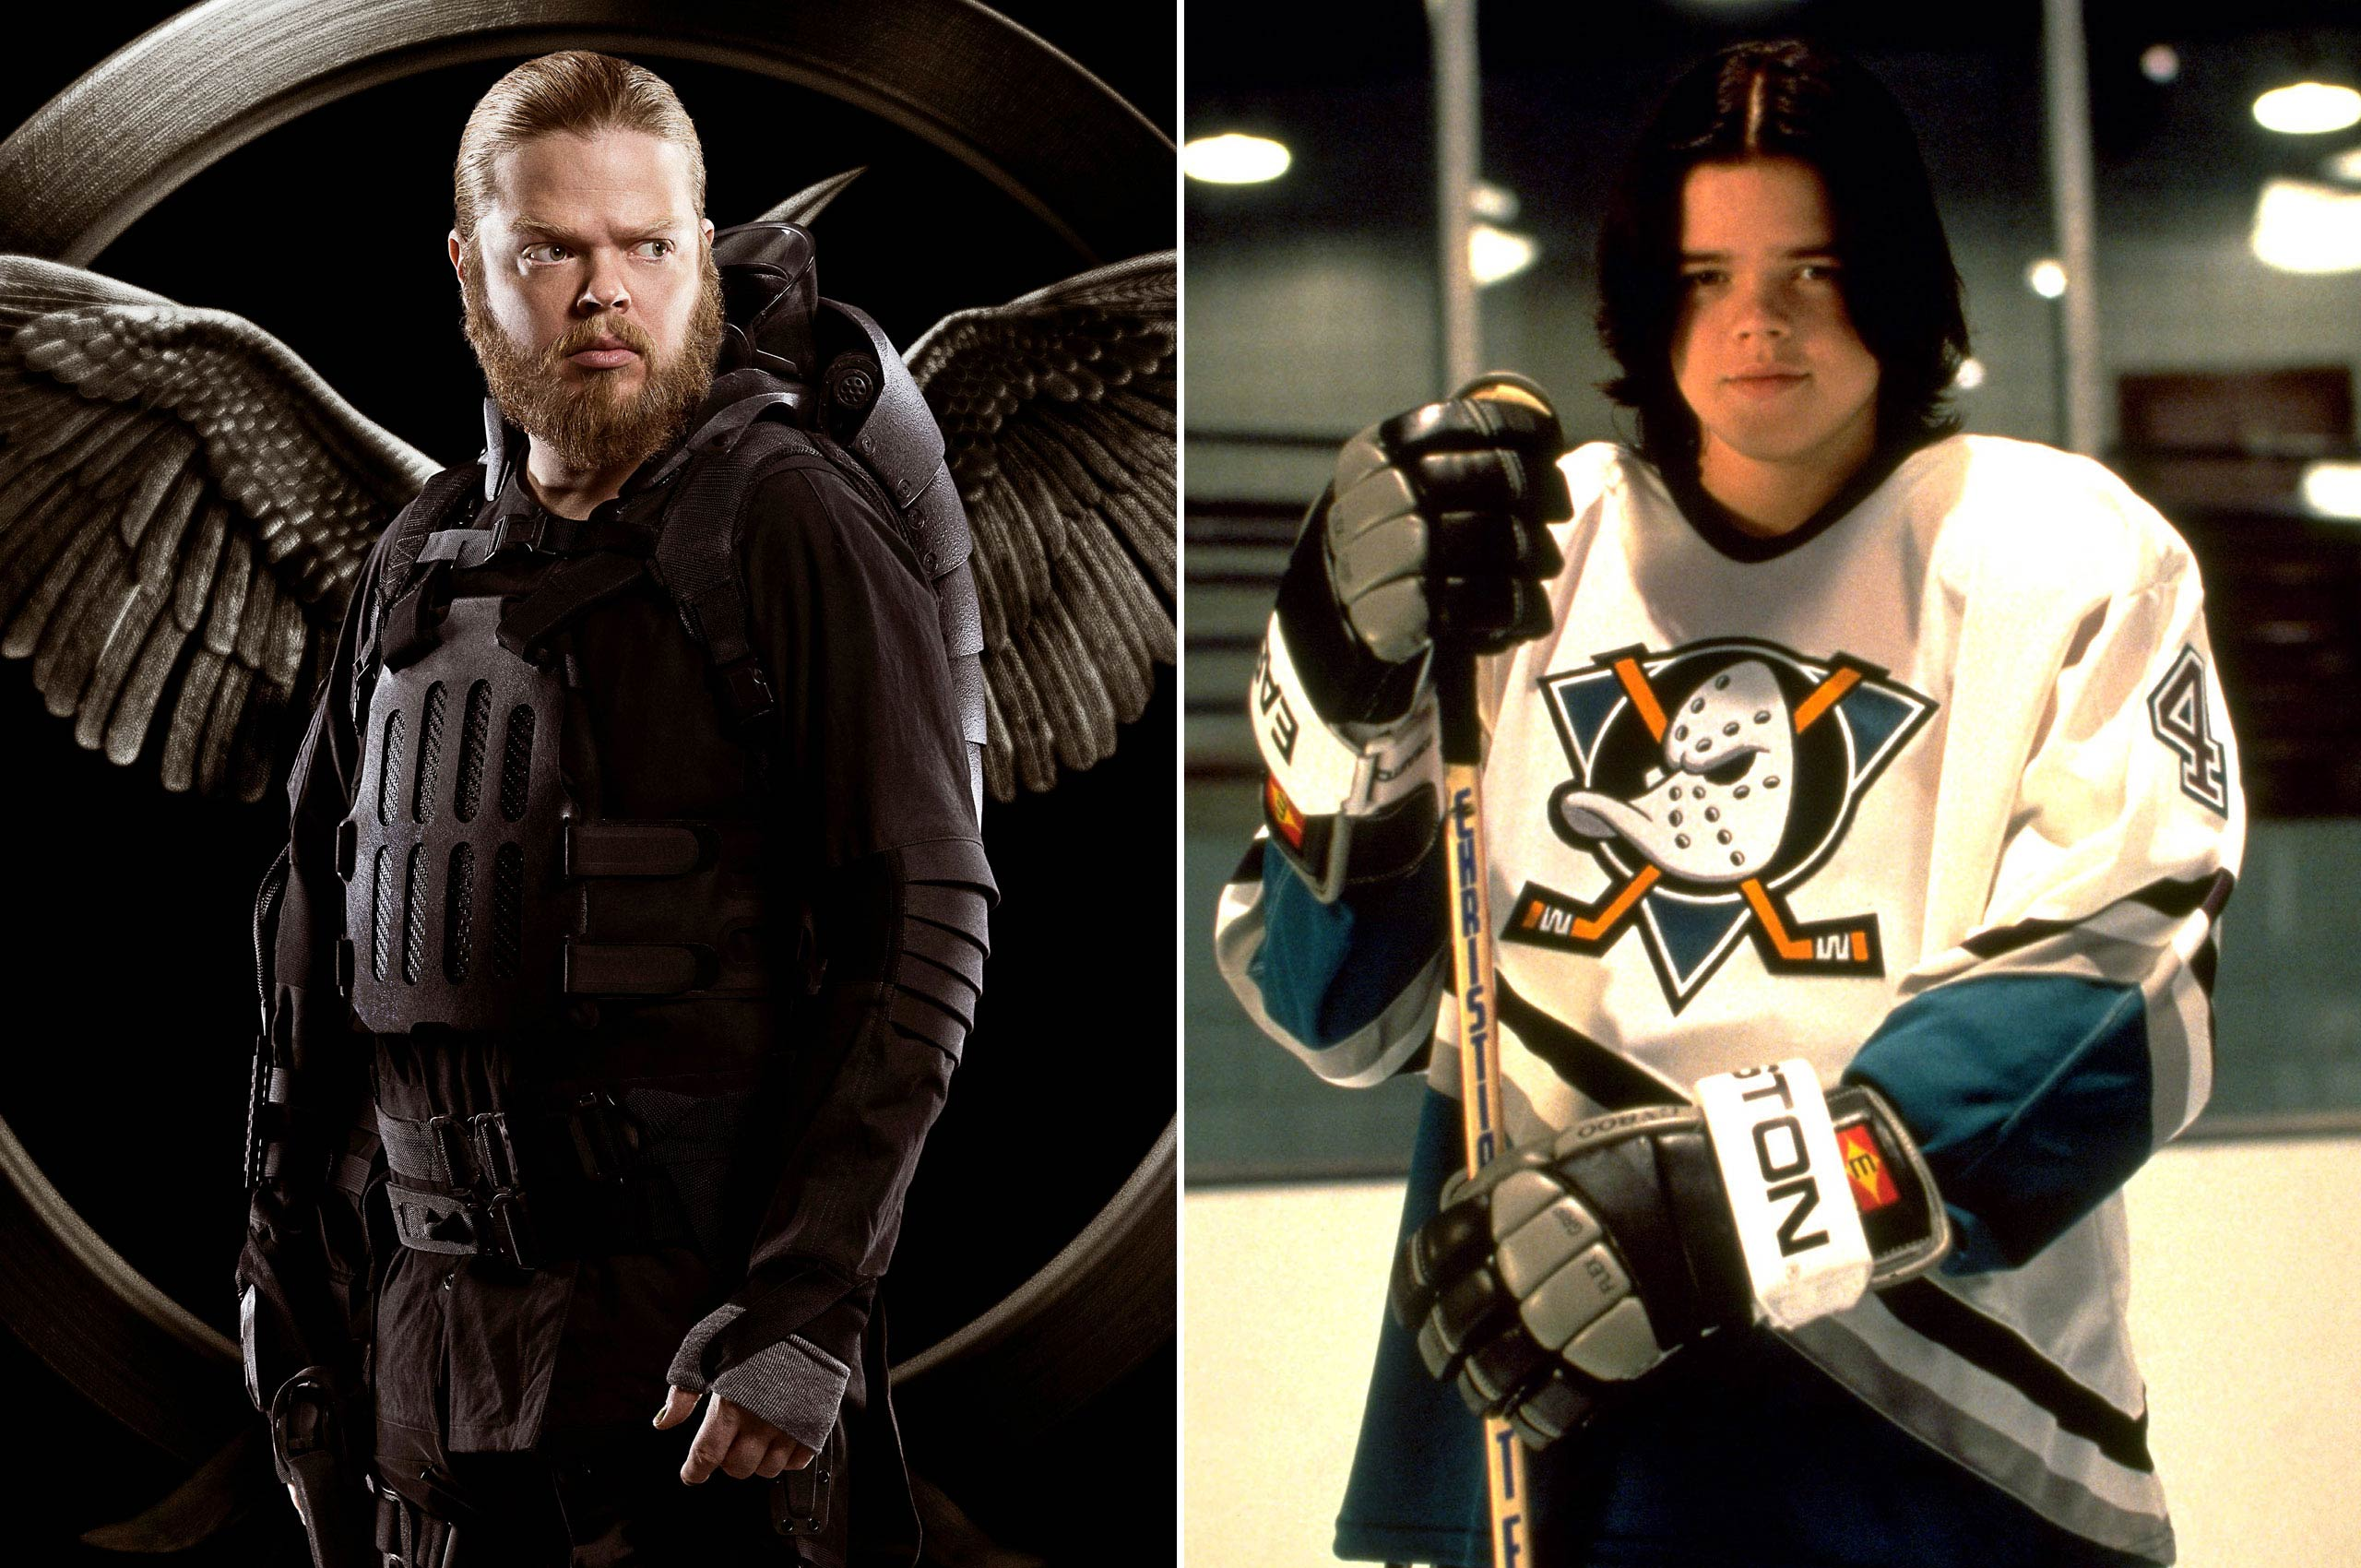 Long before he was shooting propaganda films in <i>Mockingjay</i> as Pollux, Elden Henson was shooting pucks back in the 90s as Fulton Reed in the <i>Mighty Ducks</i> trilogy.